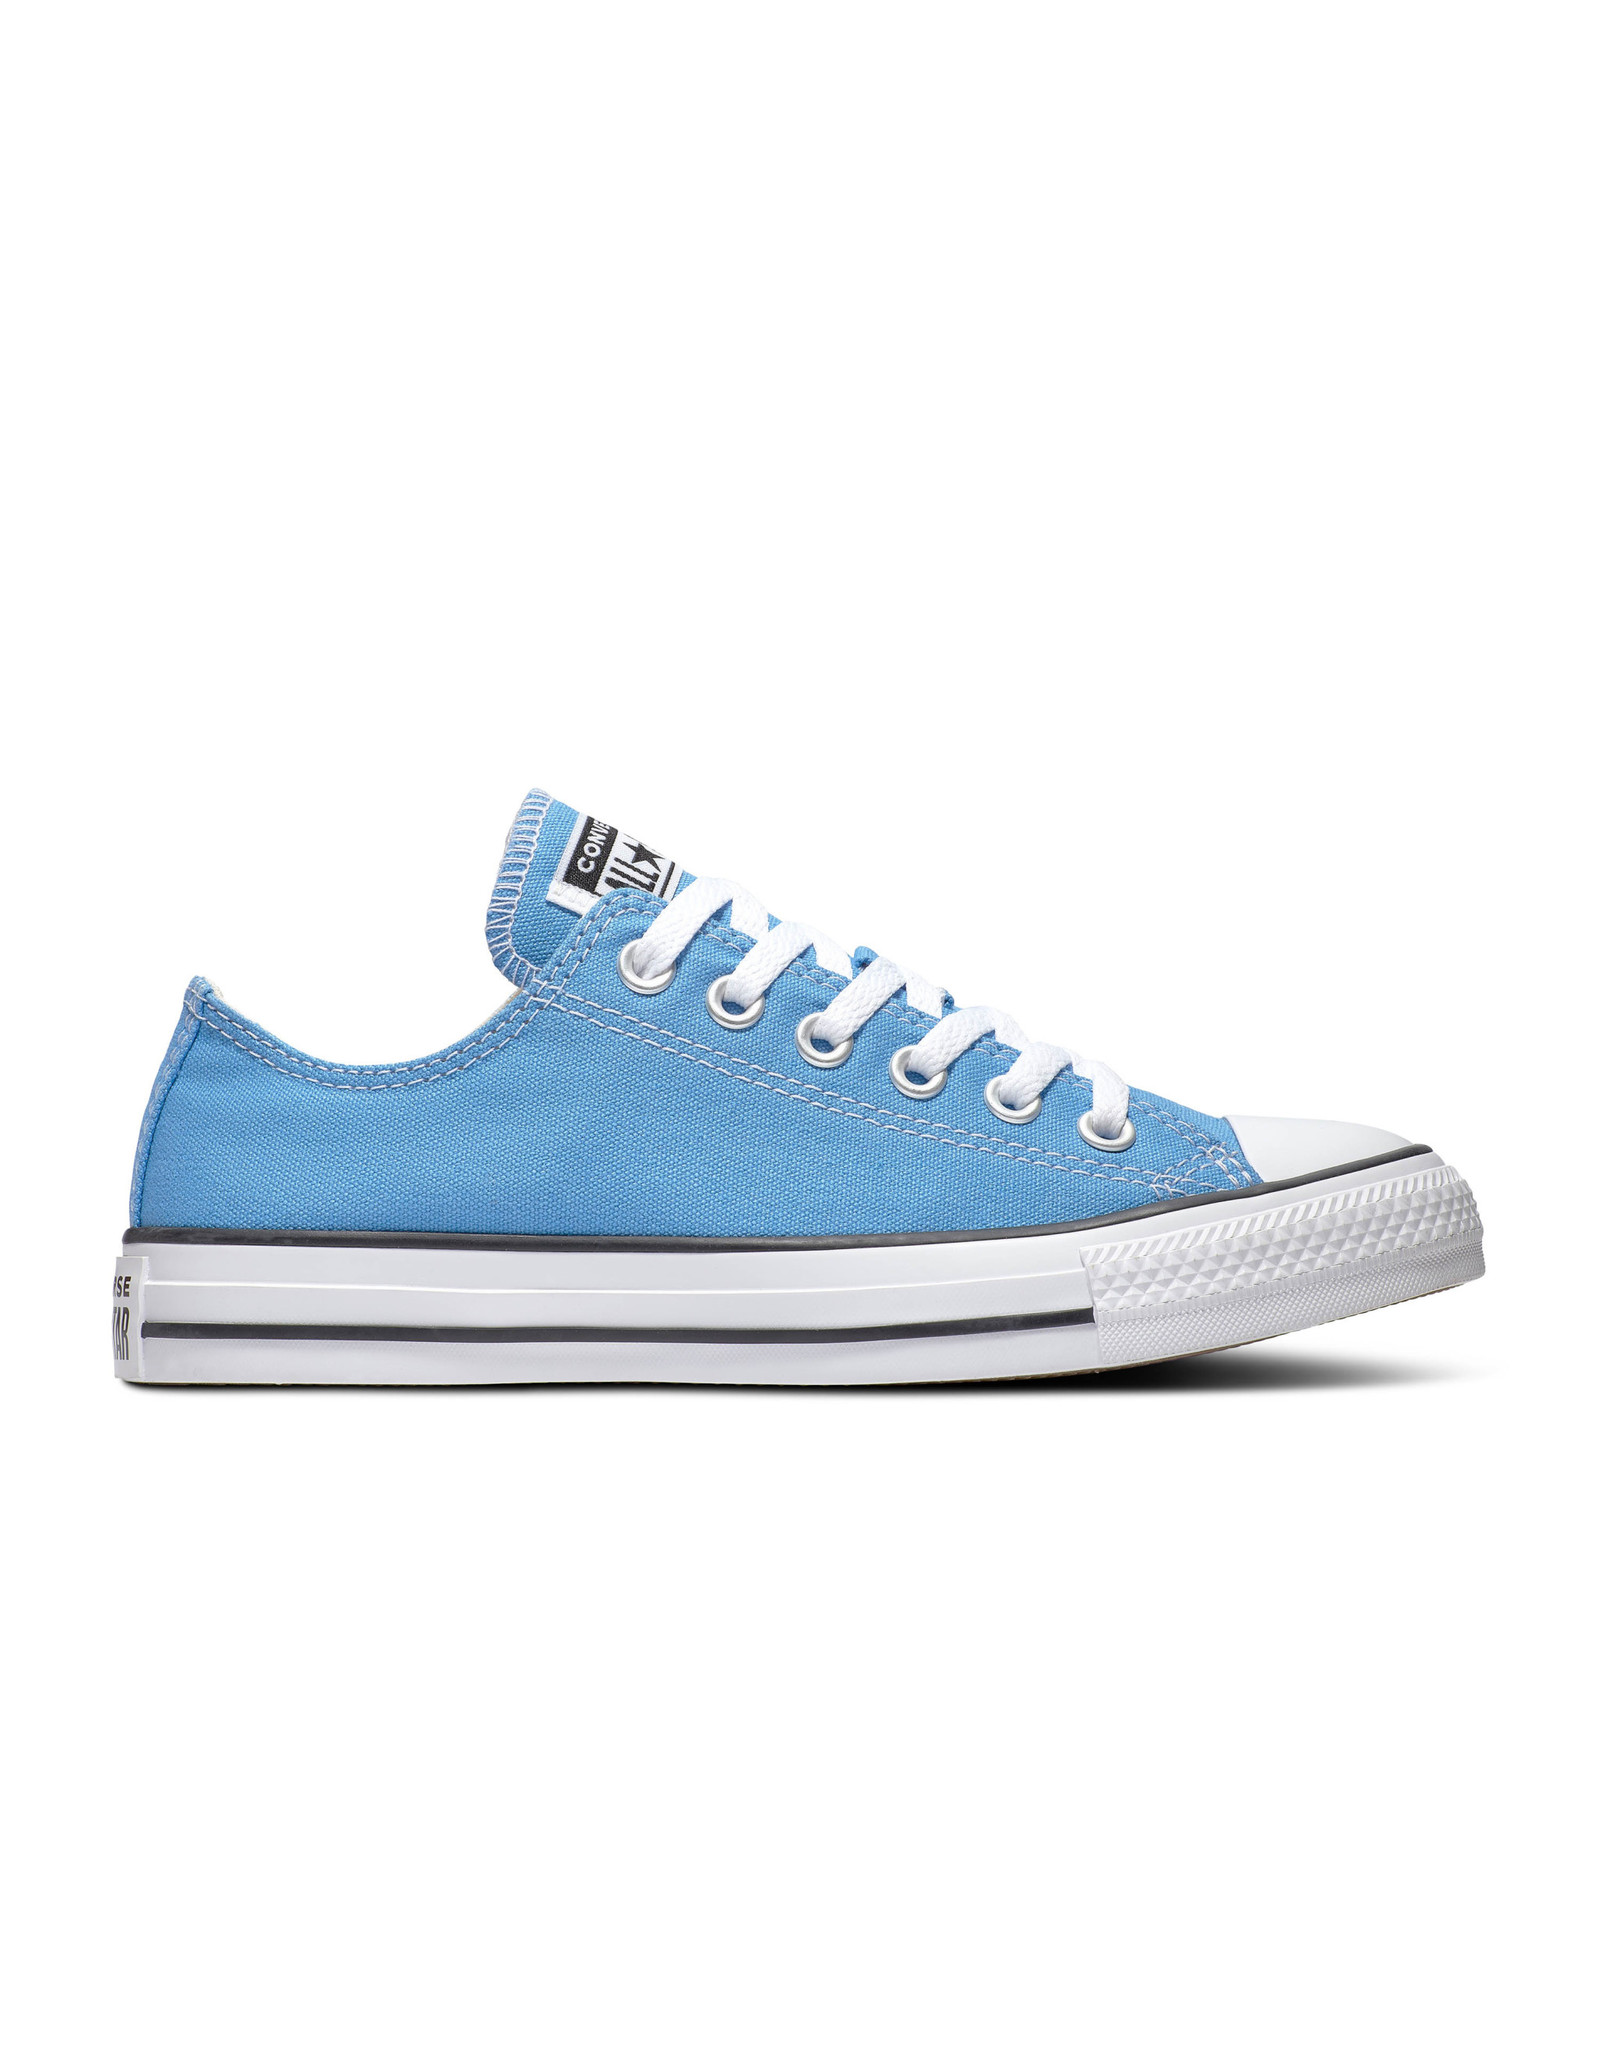 CONVERSE CHUCK TAYLOR ALL STAR  OX COAST C14CO-166709C